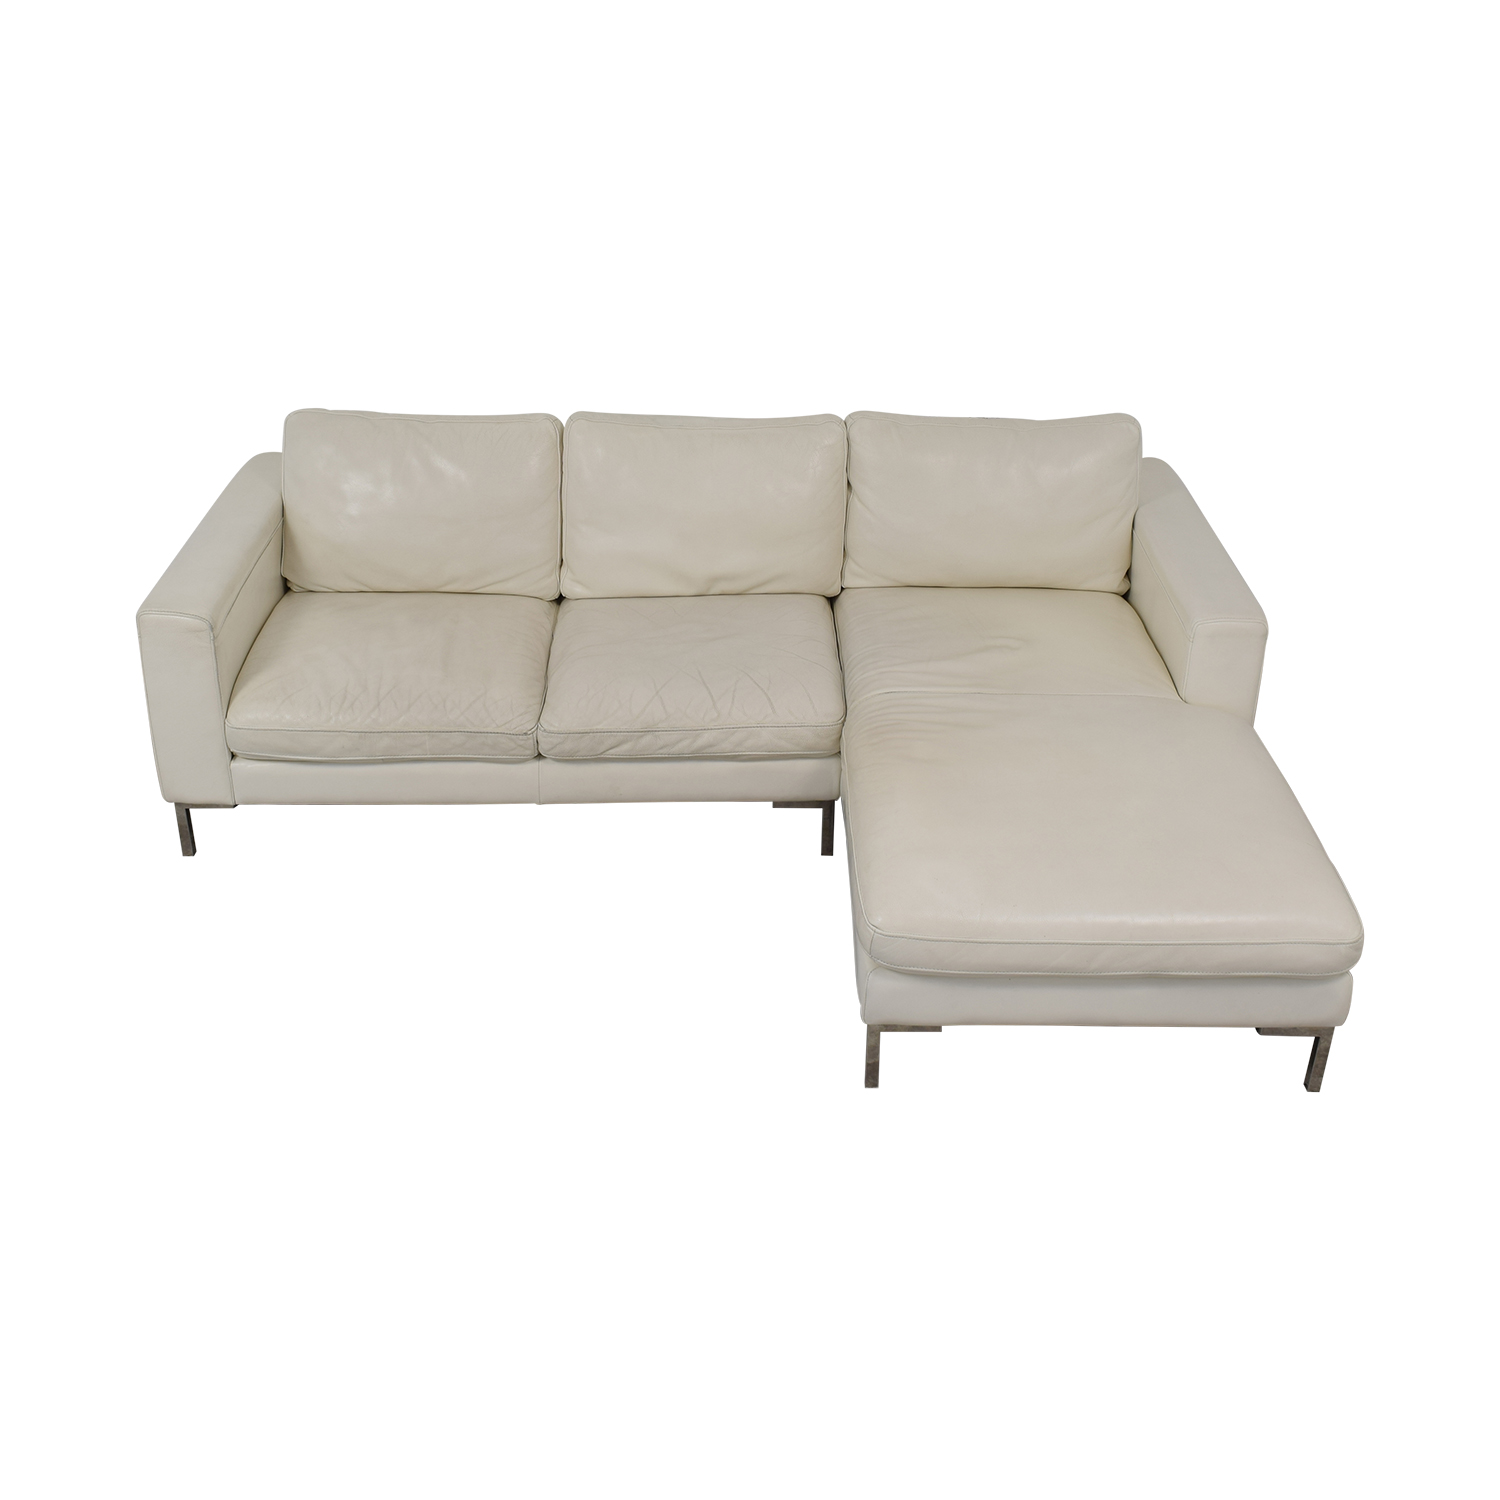 buy  Modern Chaise Sectional Sofa online